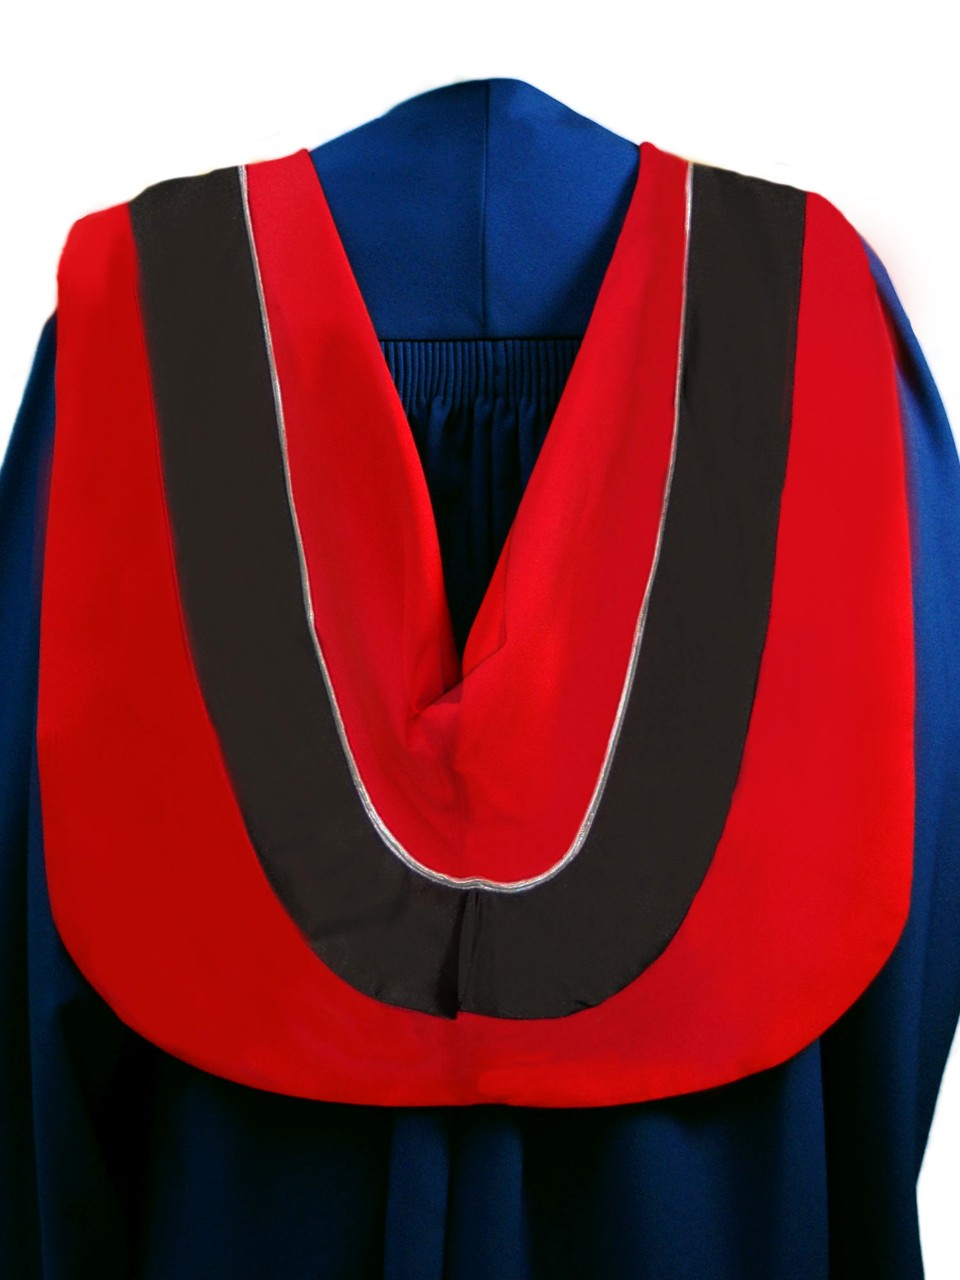 The Master of Digital Media hood is red with wide black border and grey cording